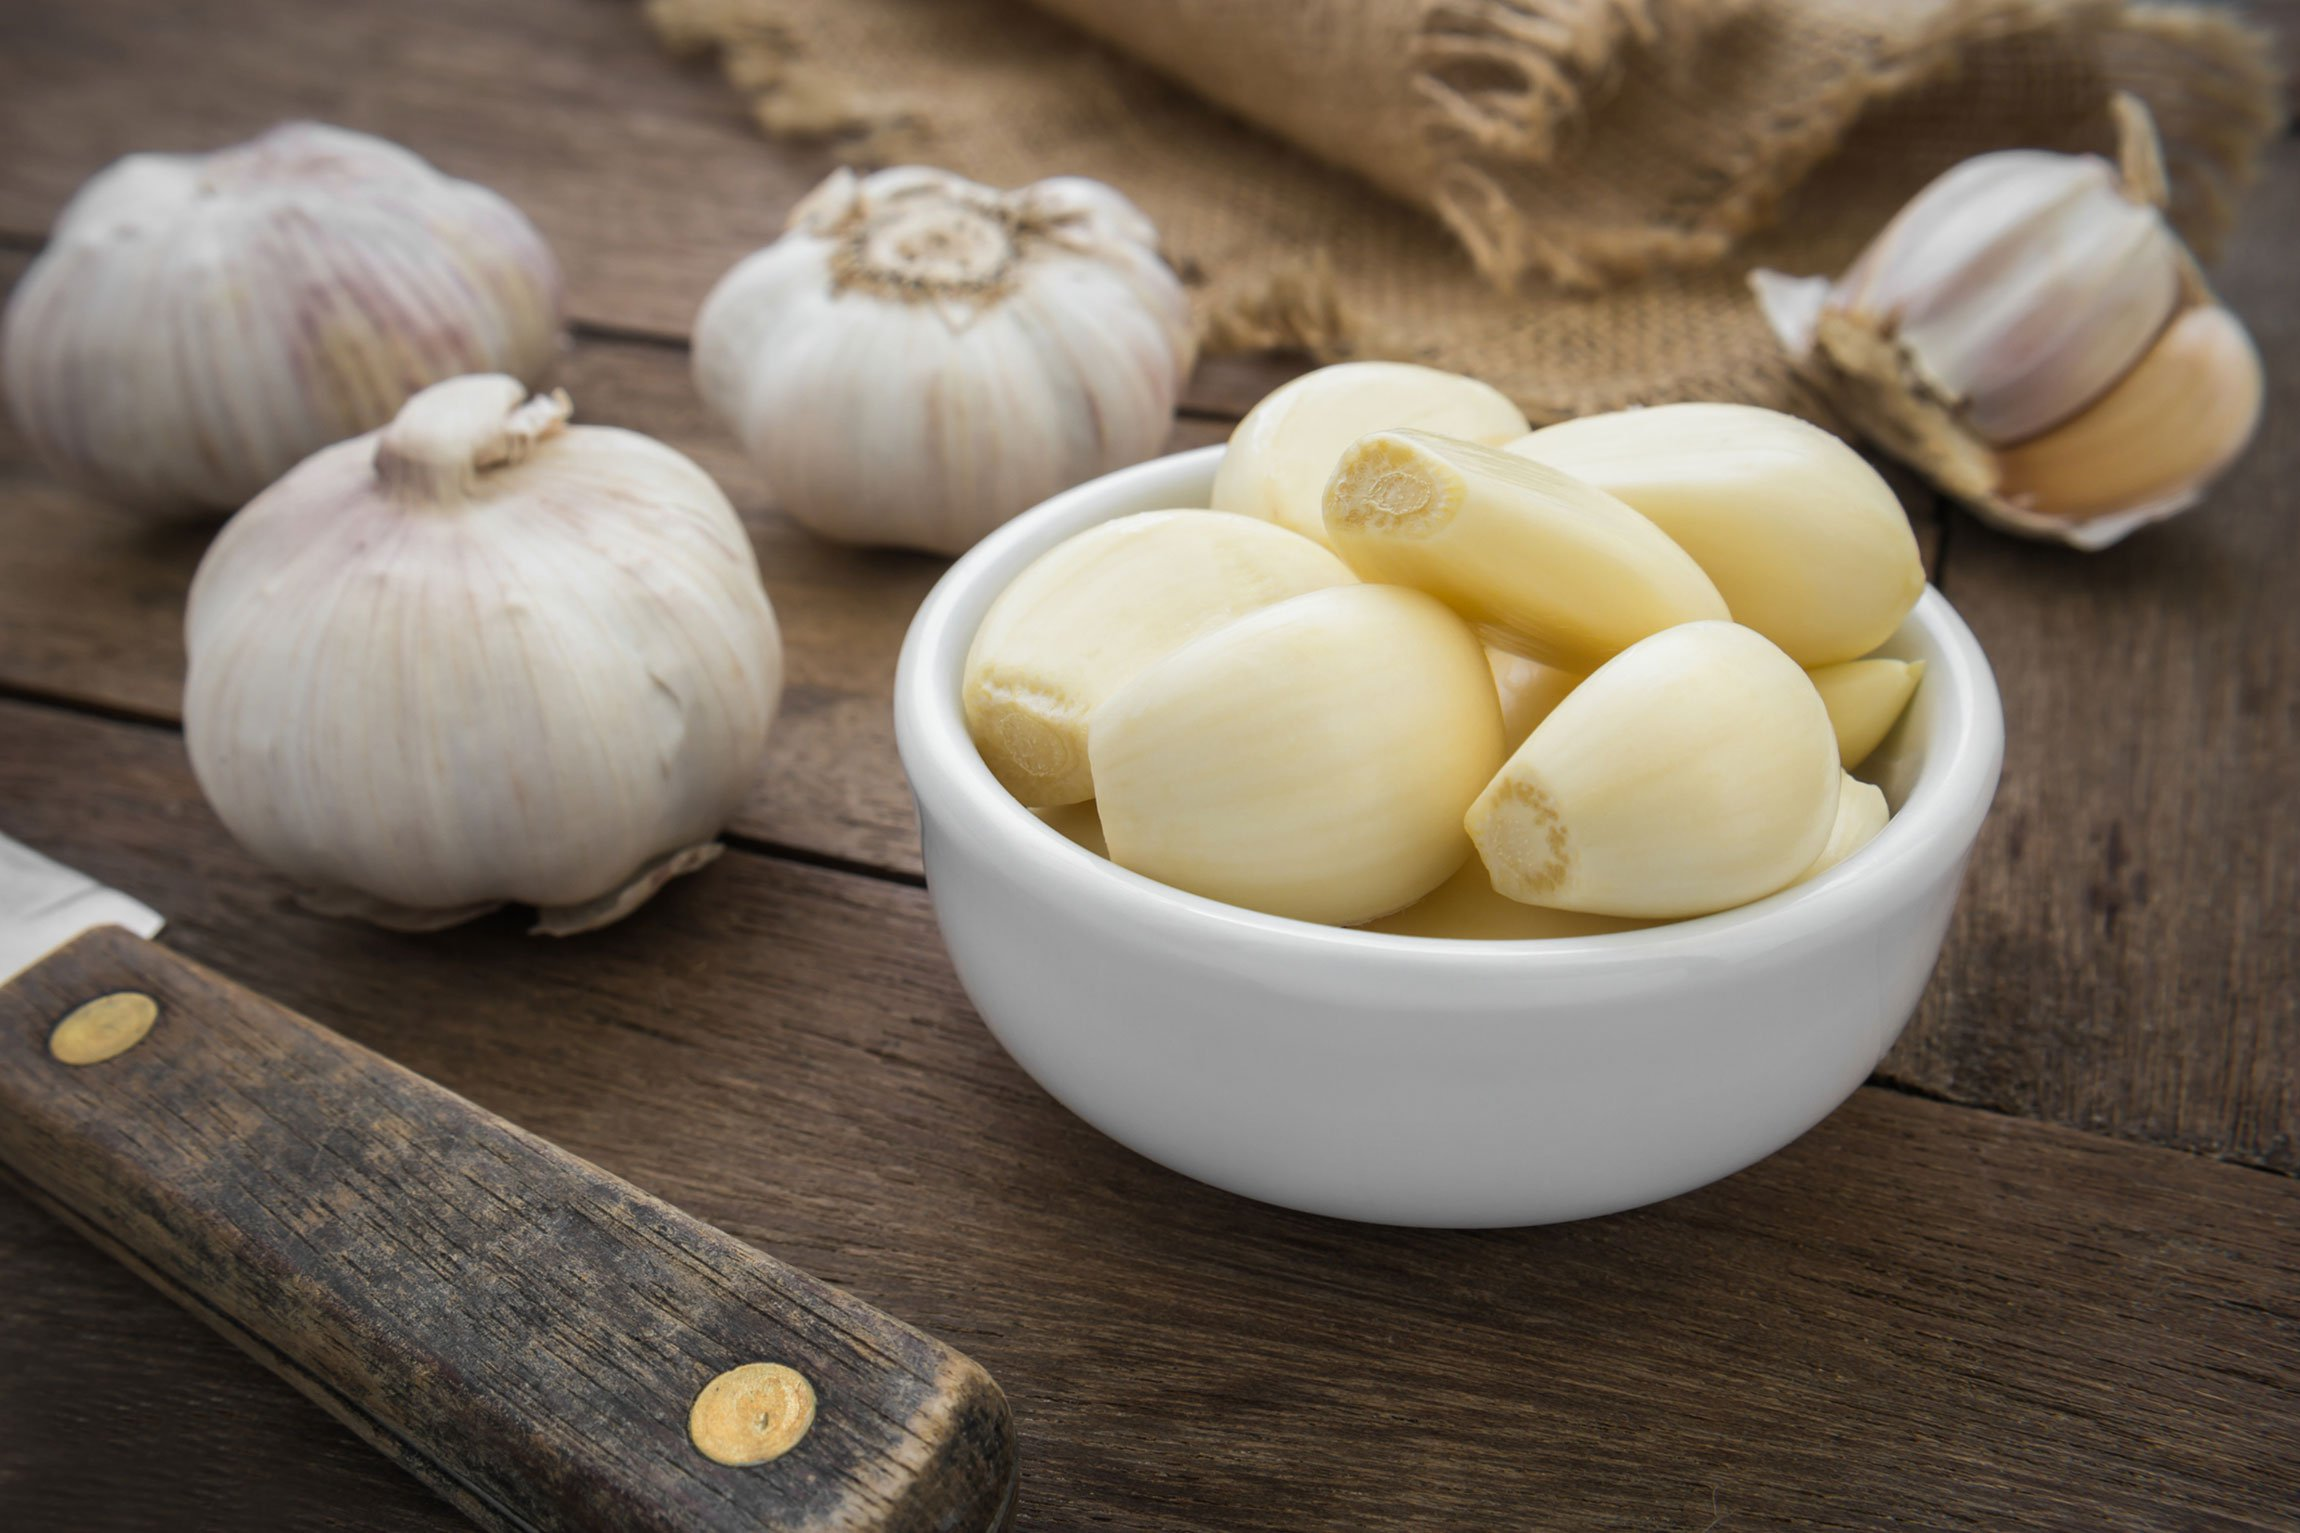 garlic bulbs, and skinned garlic cloves in a bowl